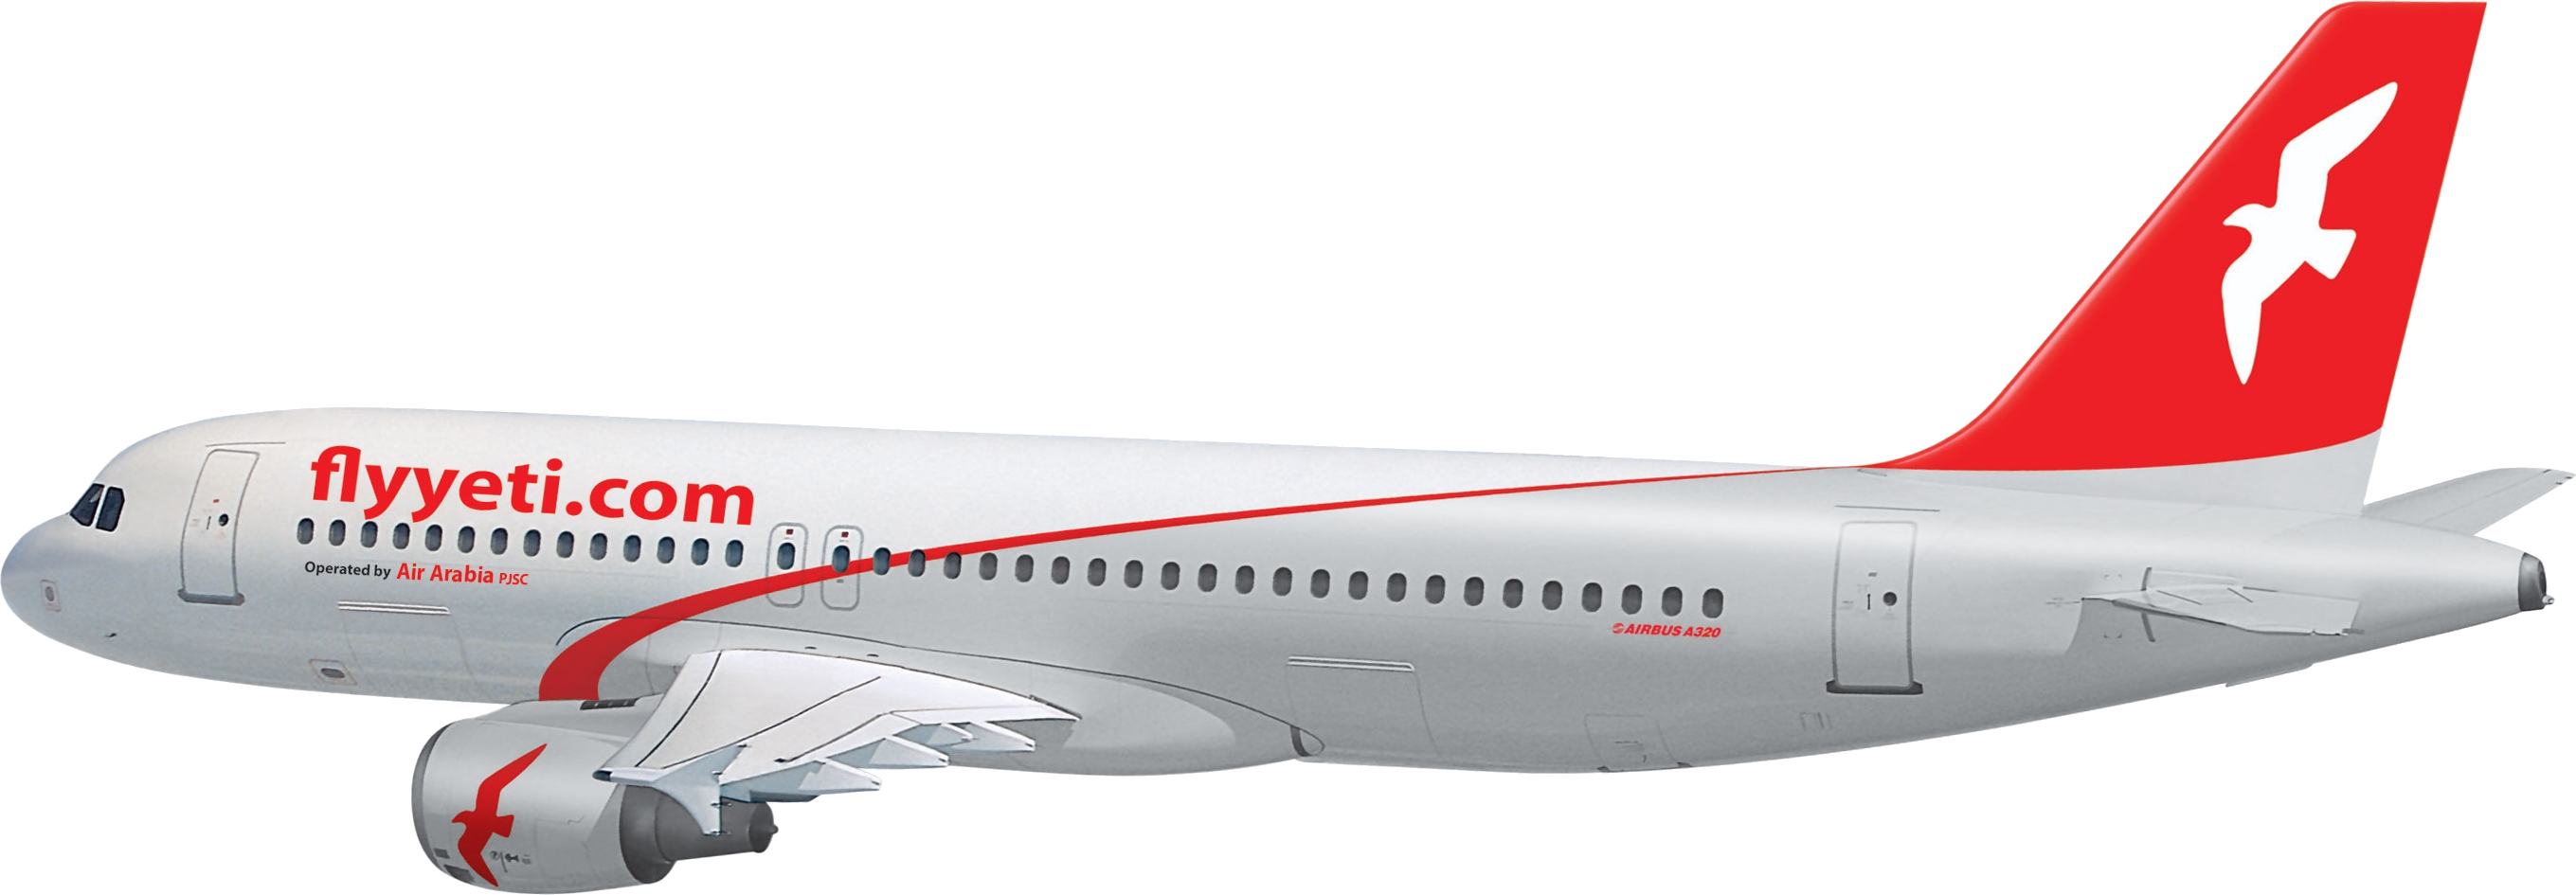 Airplane png. Planes images free download